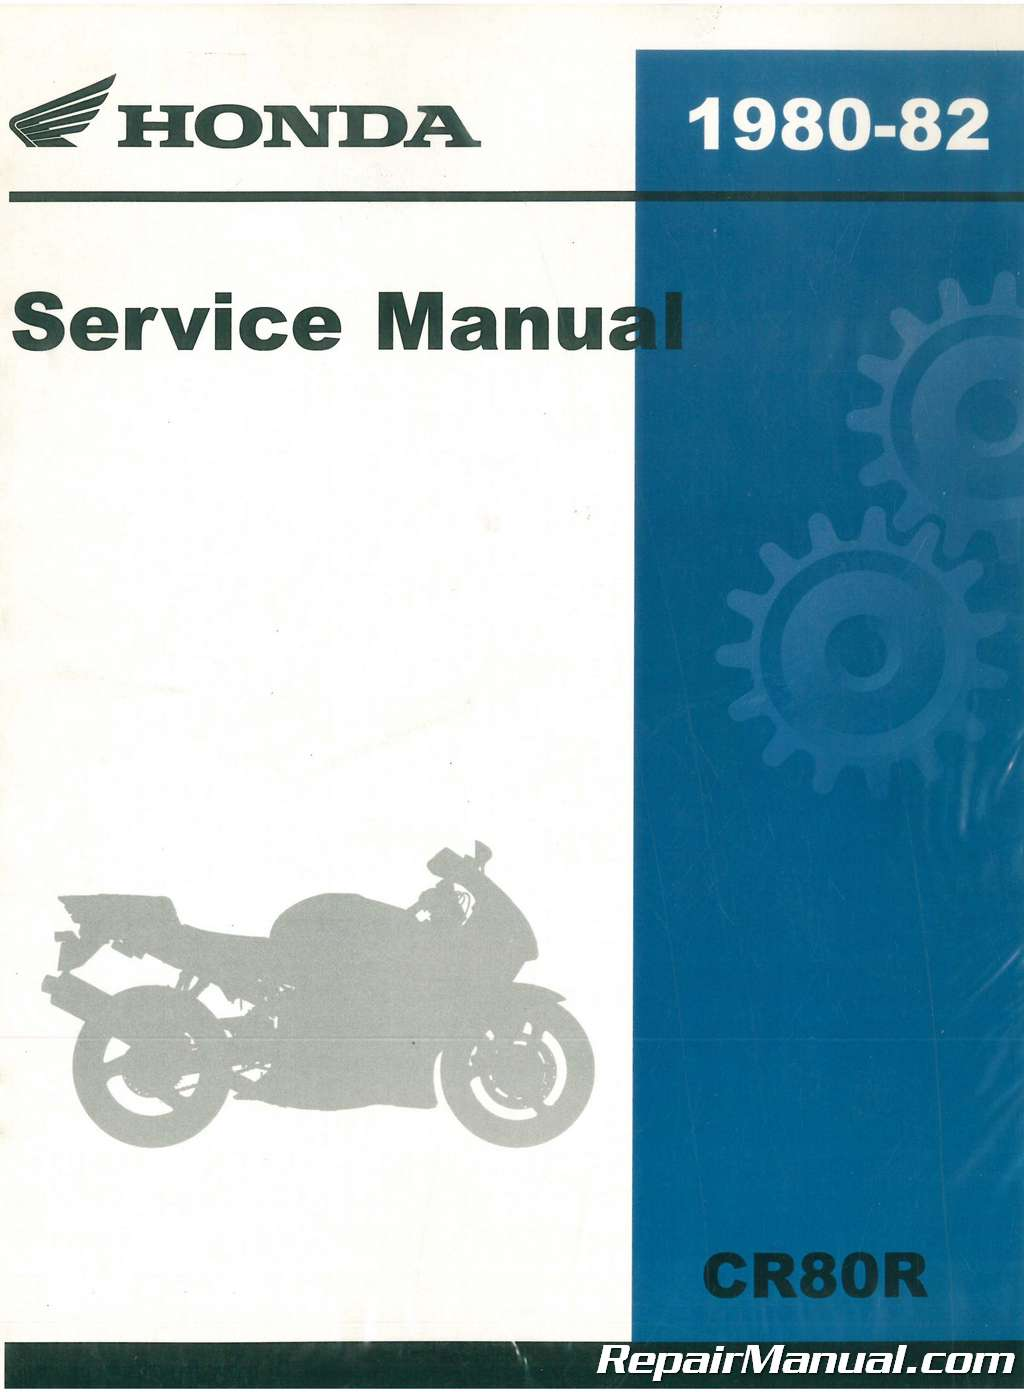 Ebay honda motorcycles user manuals array 1980 1981 1982 honda cr80r motorcycle service manual ebay rh ebay com fandeluxe Choice Image